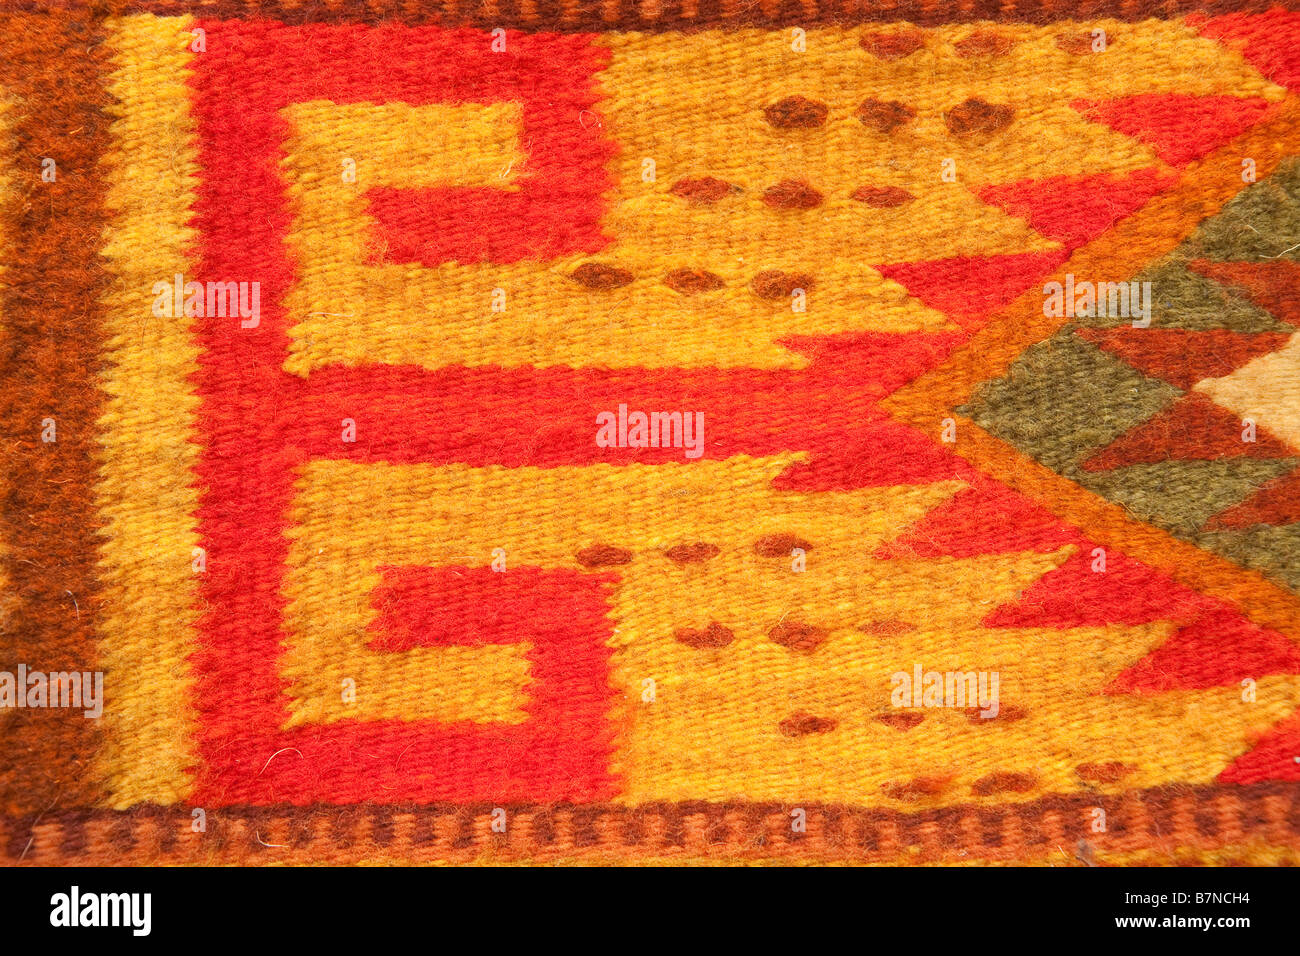 Close-up of a traditional Navajo rug pattern - Stock Image